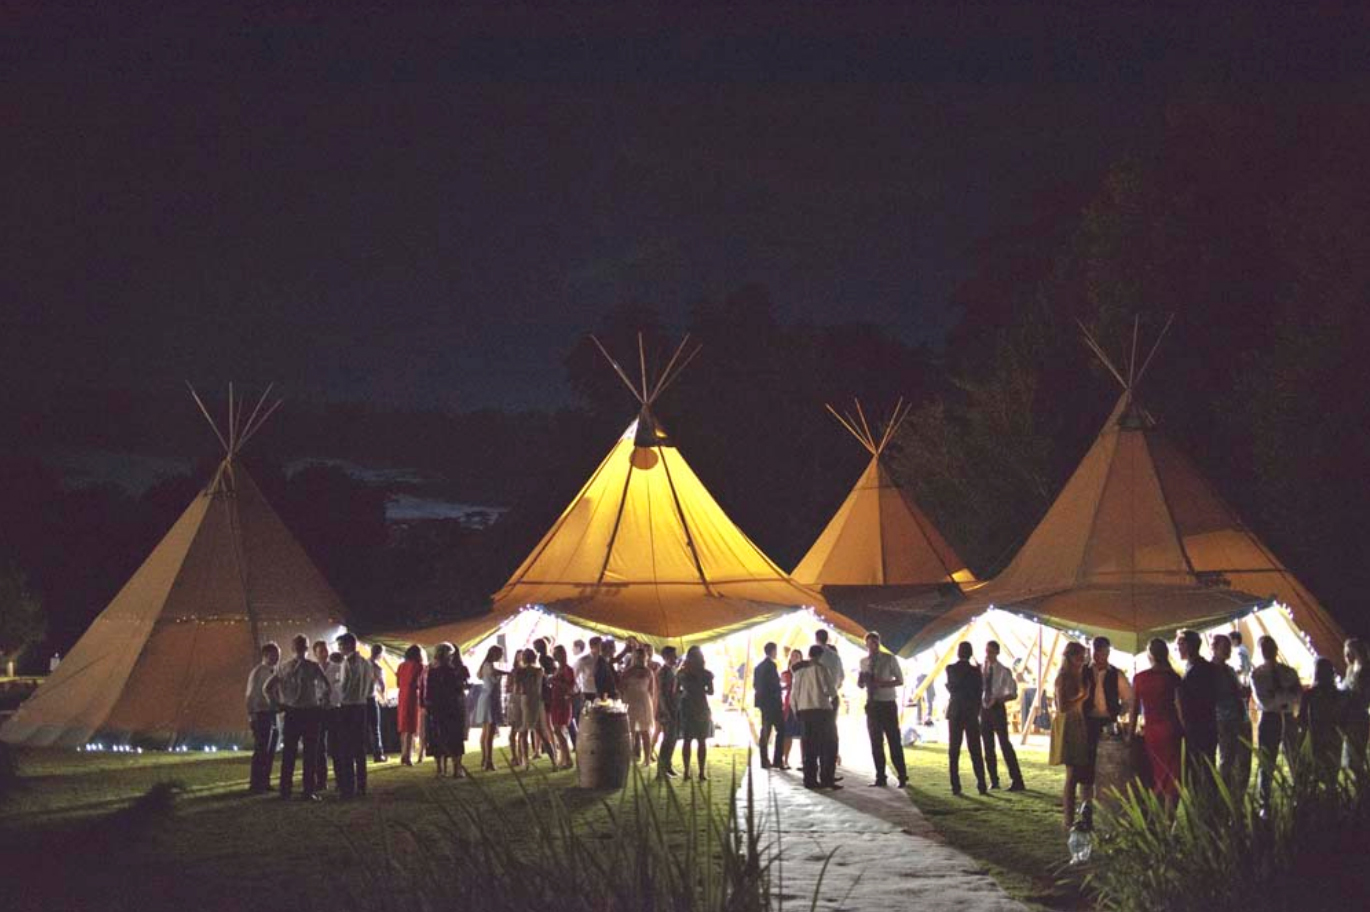 3 tipi hats illuminated at night on the Canal Lake venue at Busbridge Lakes for a lakeside wedding reception